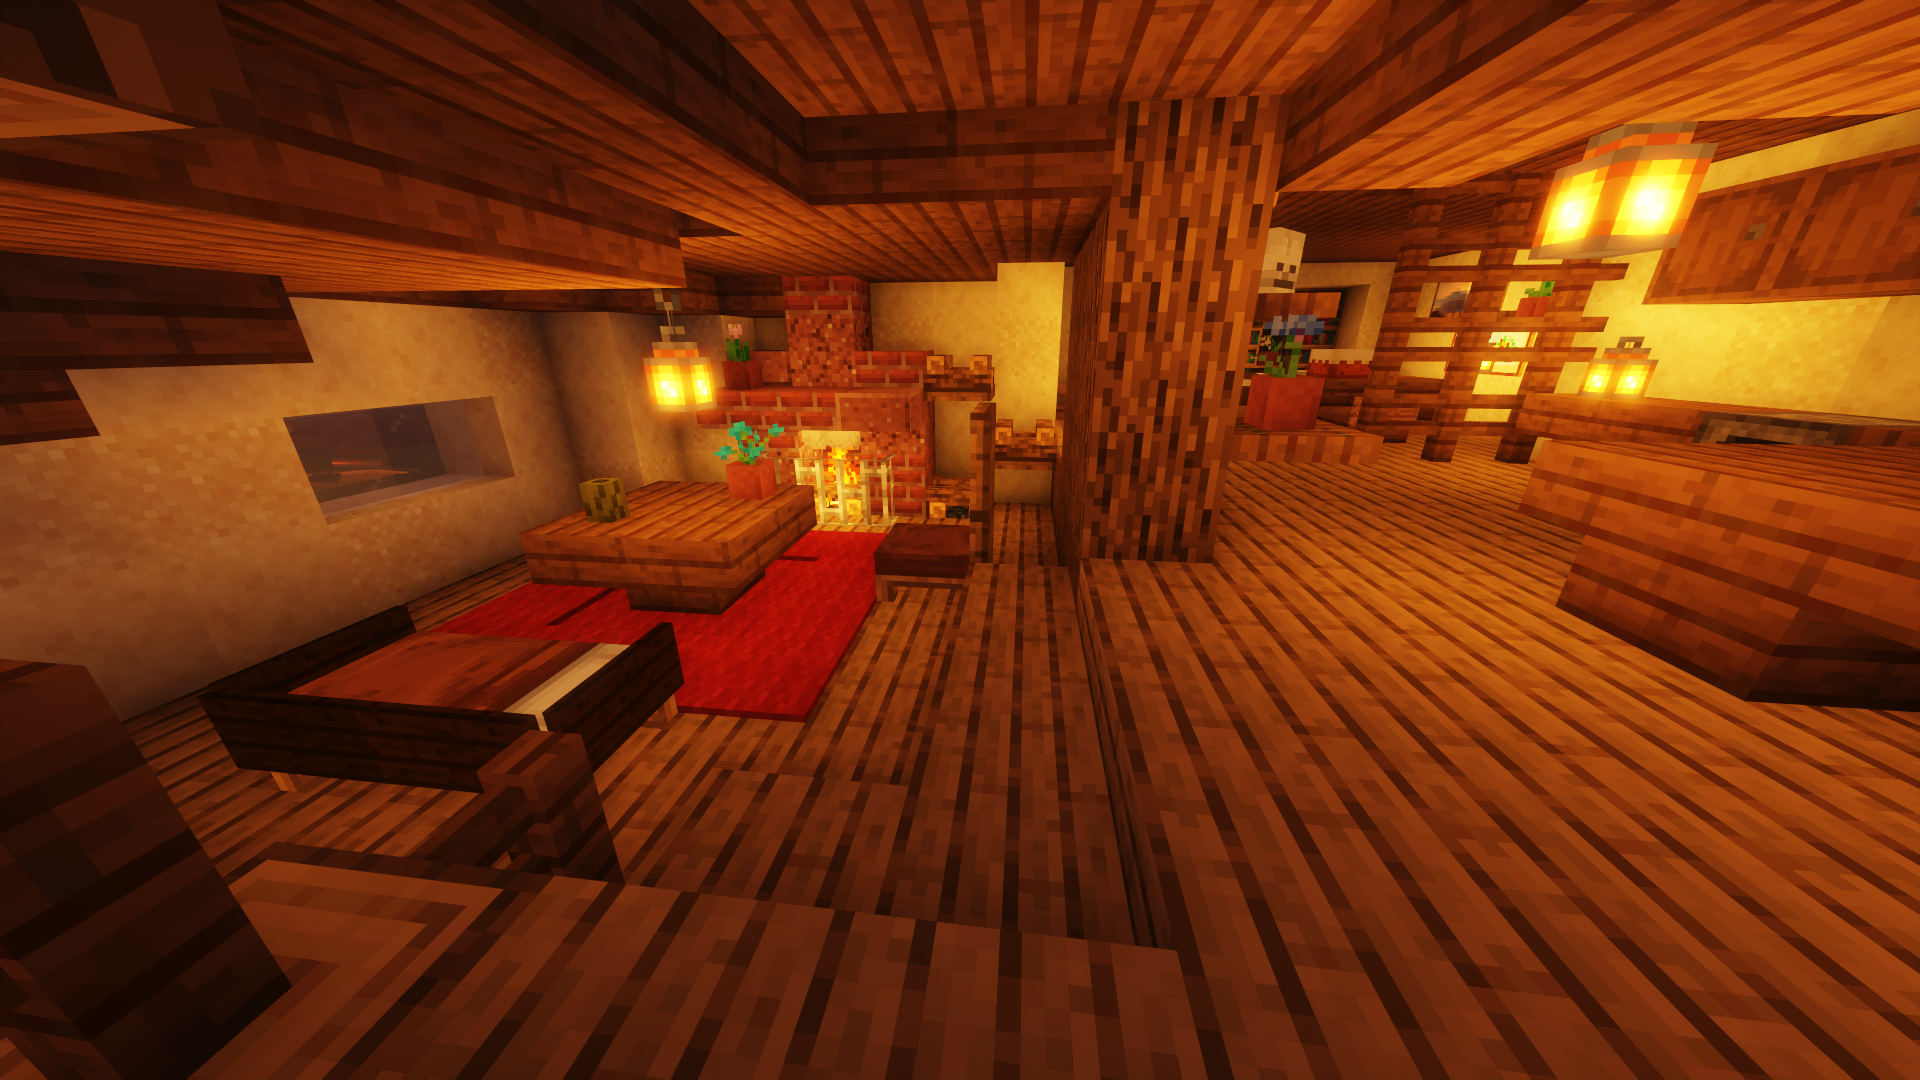 Minecraft screenshot with warm lighting, featuring a cozy living room with a conversation pit and fireplace.